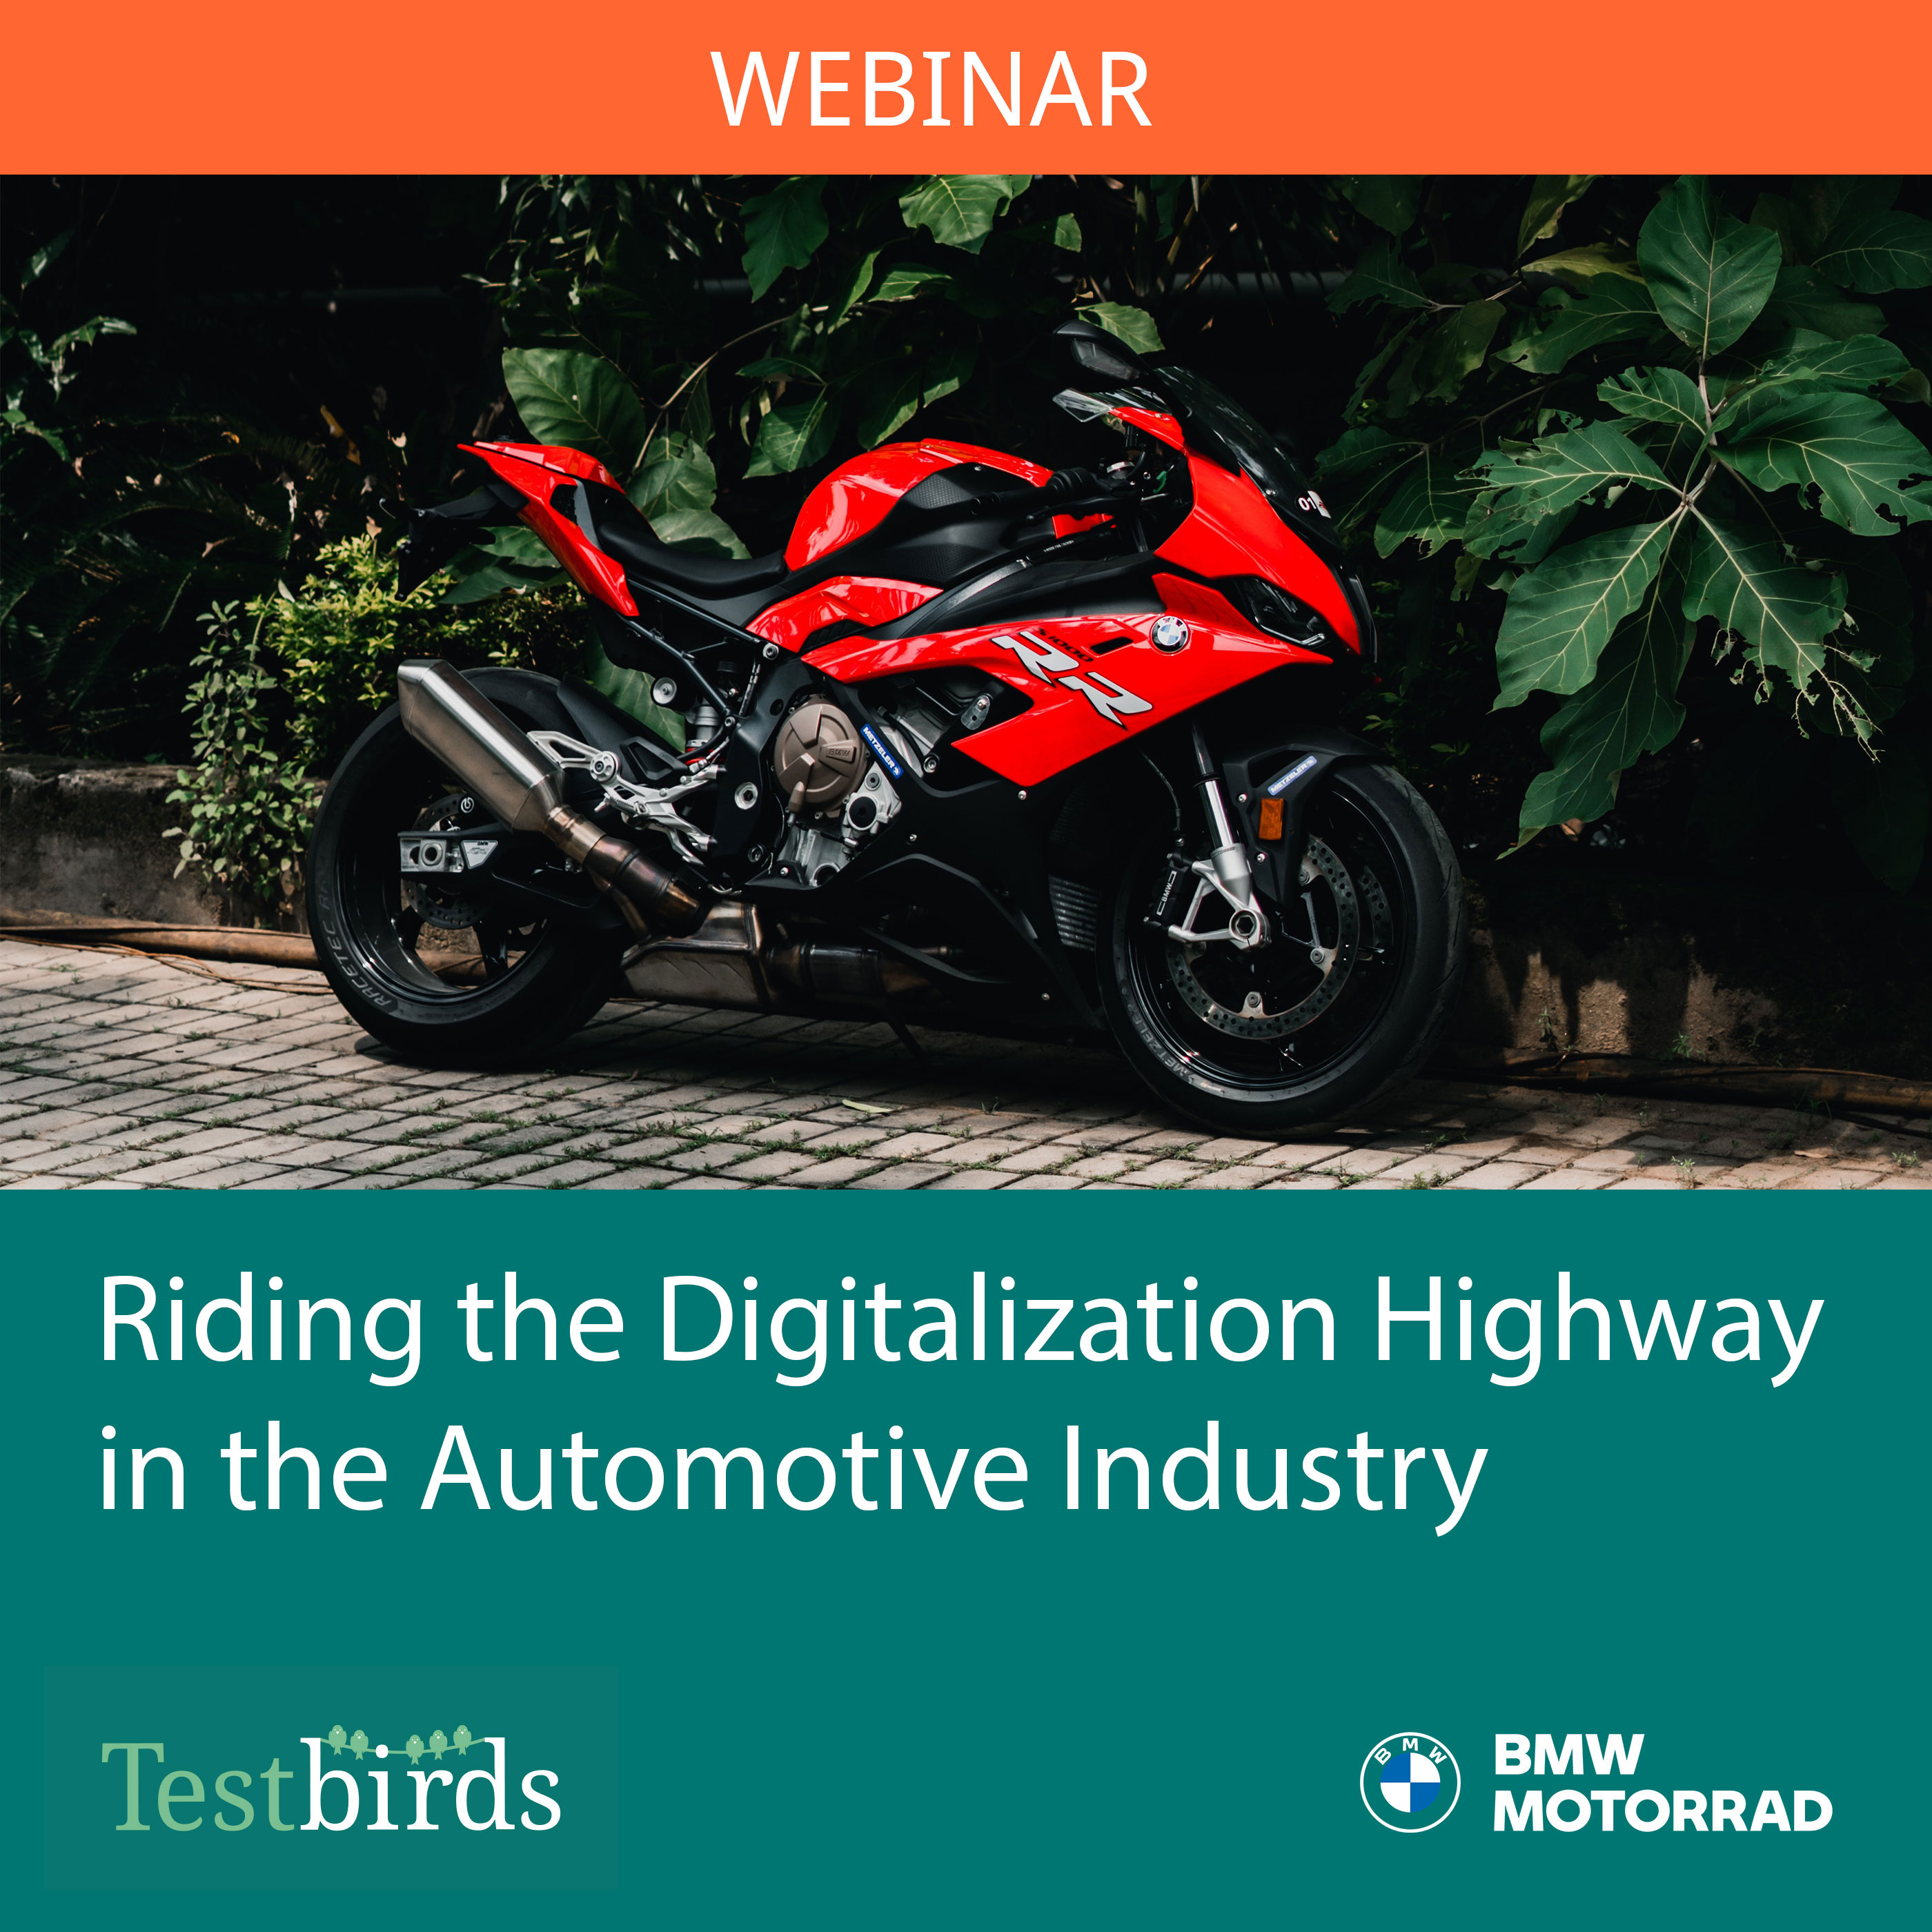 Riding the Digitalization Highway in the Automotive Industry